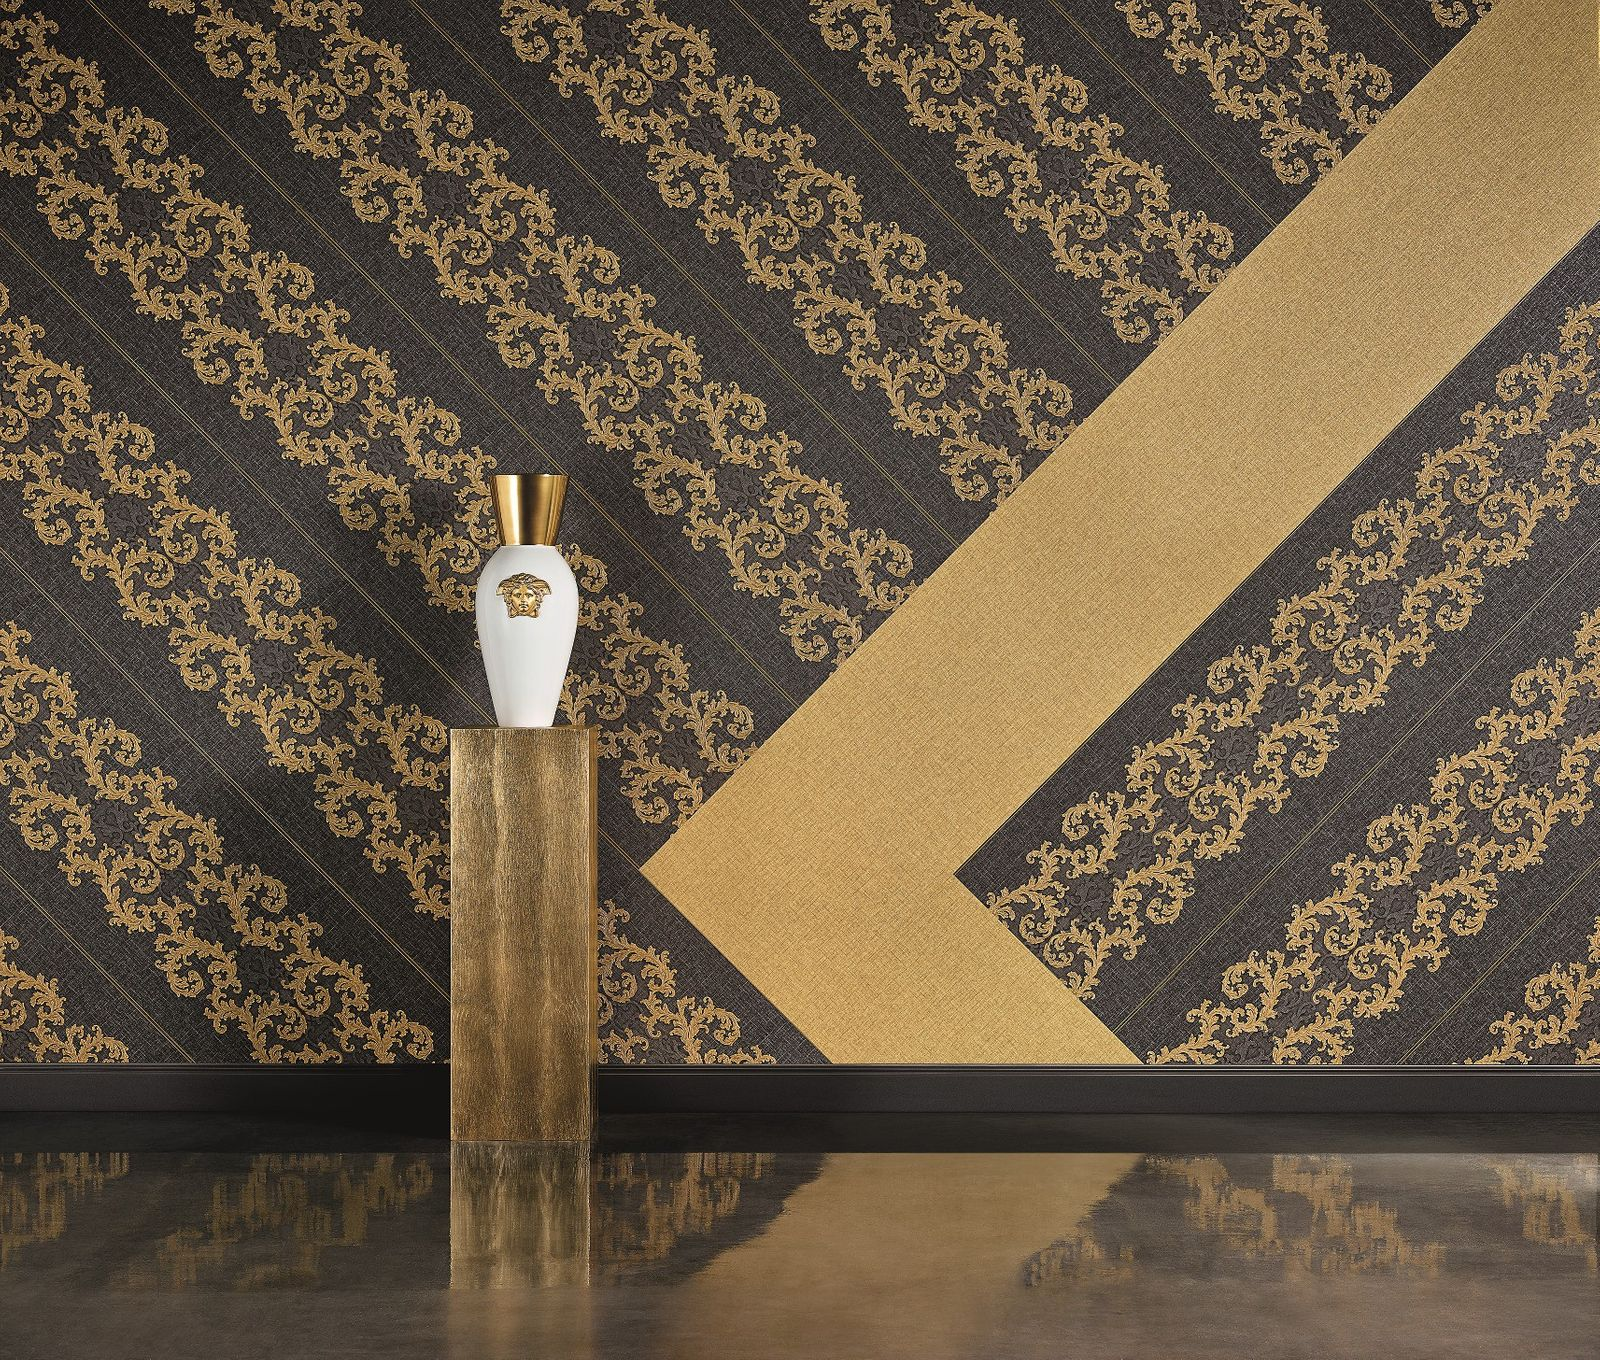 versace home wallpaper linen gold gloss 96233 4 With markise balkon mit versace home tapete